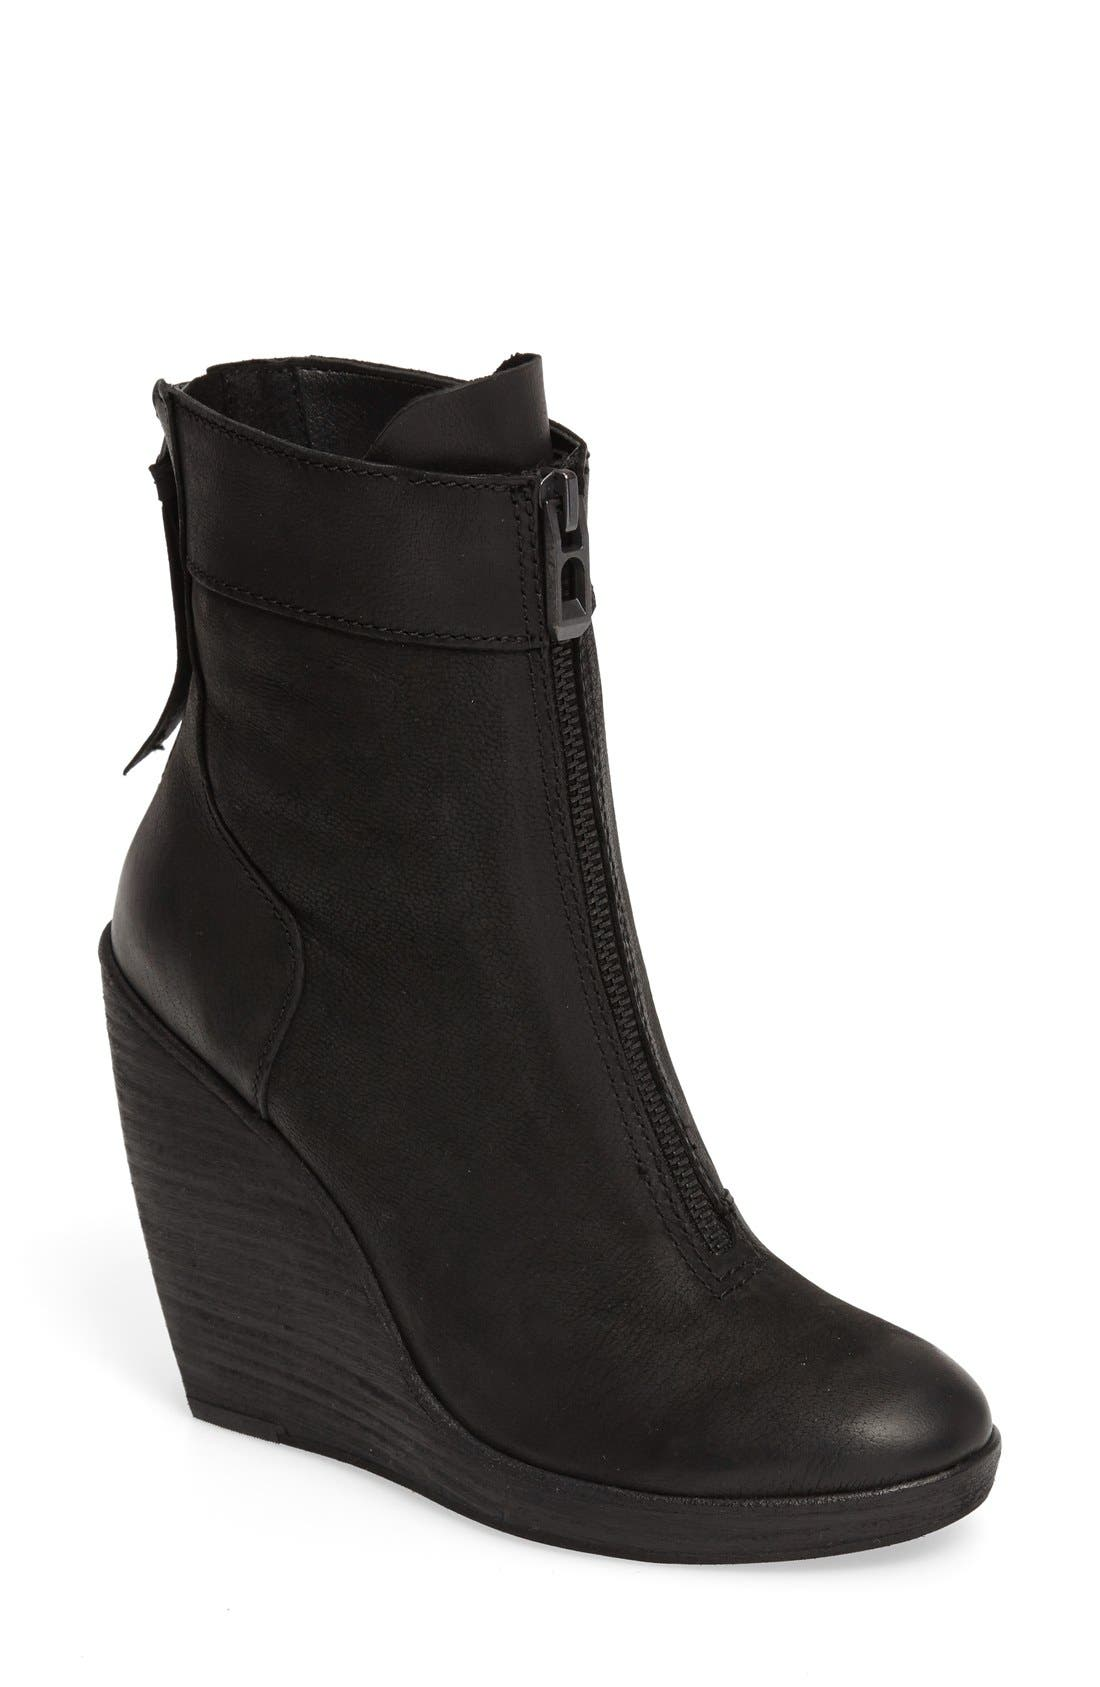 Main Image - Dolce Vita Caden Zip Wedge Bootie (Women)